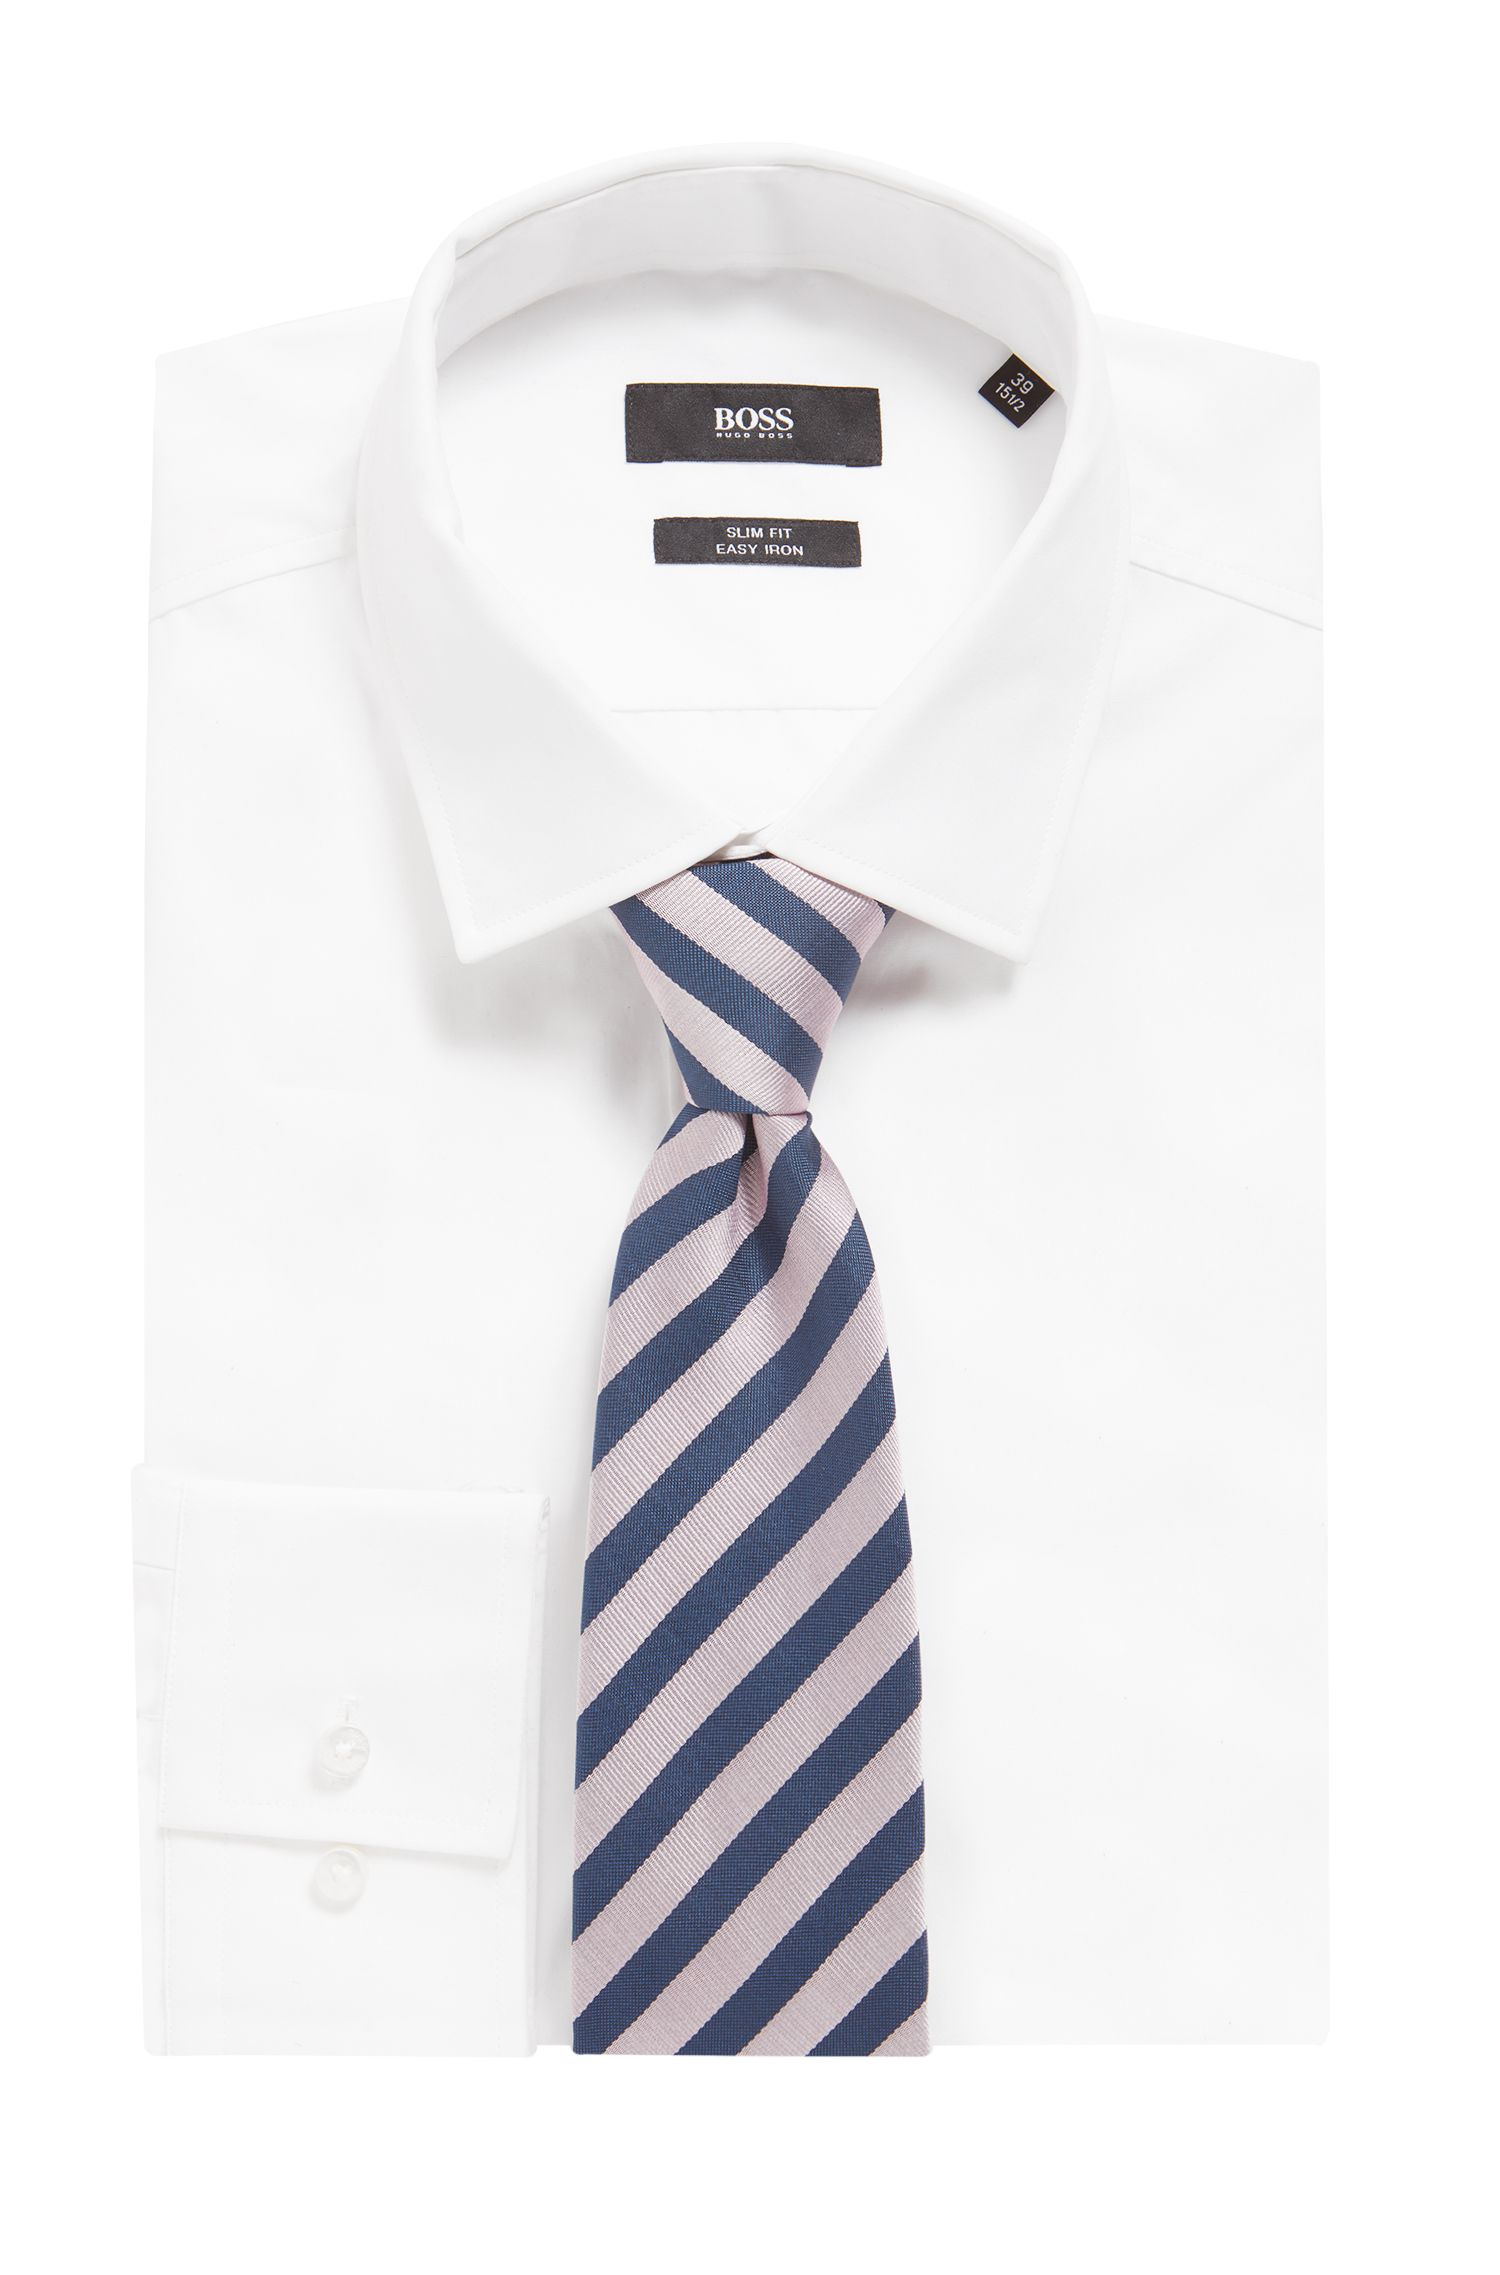 Diagonal-striped tie in water-repellent silk with shaped end